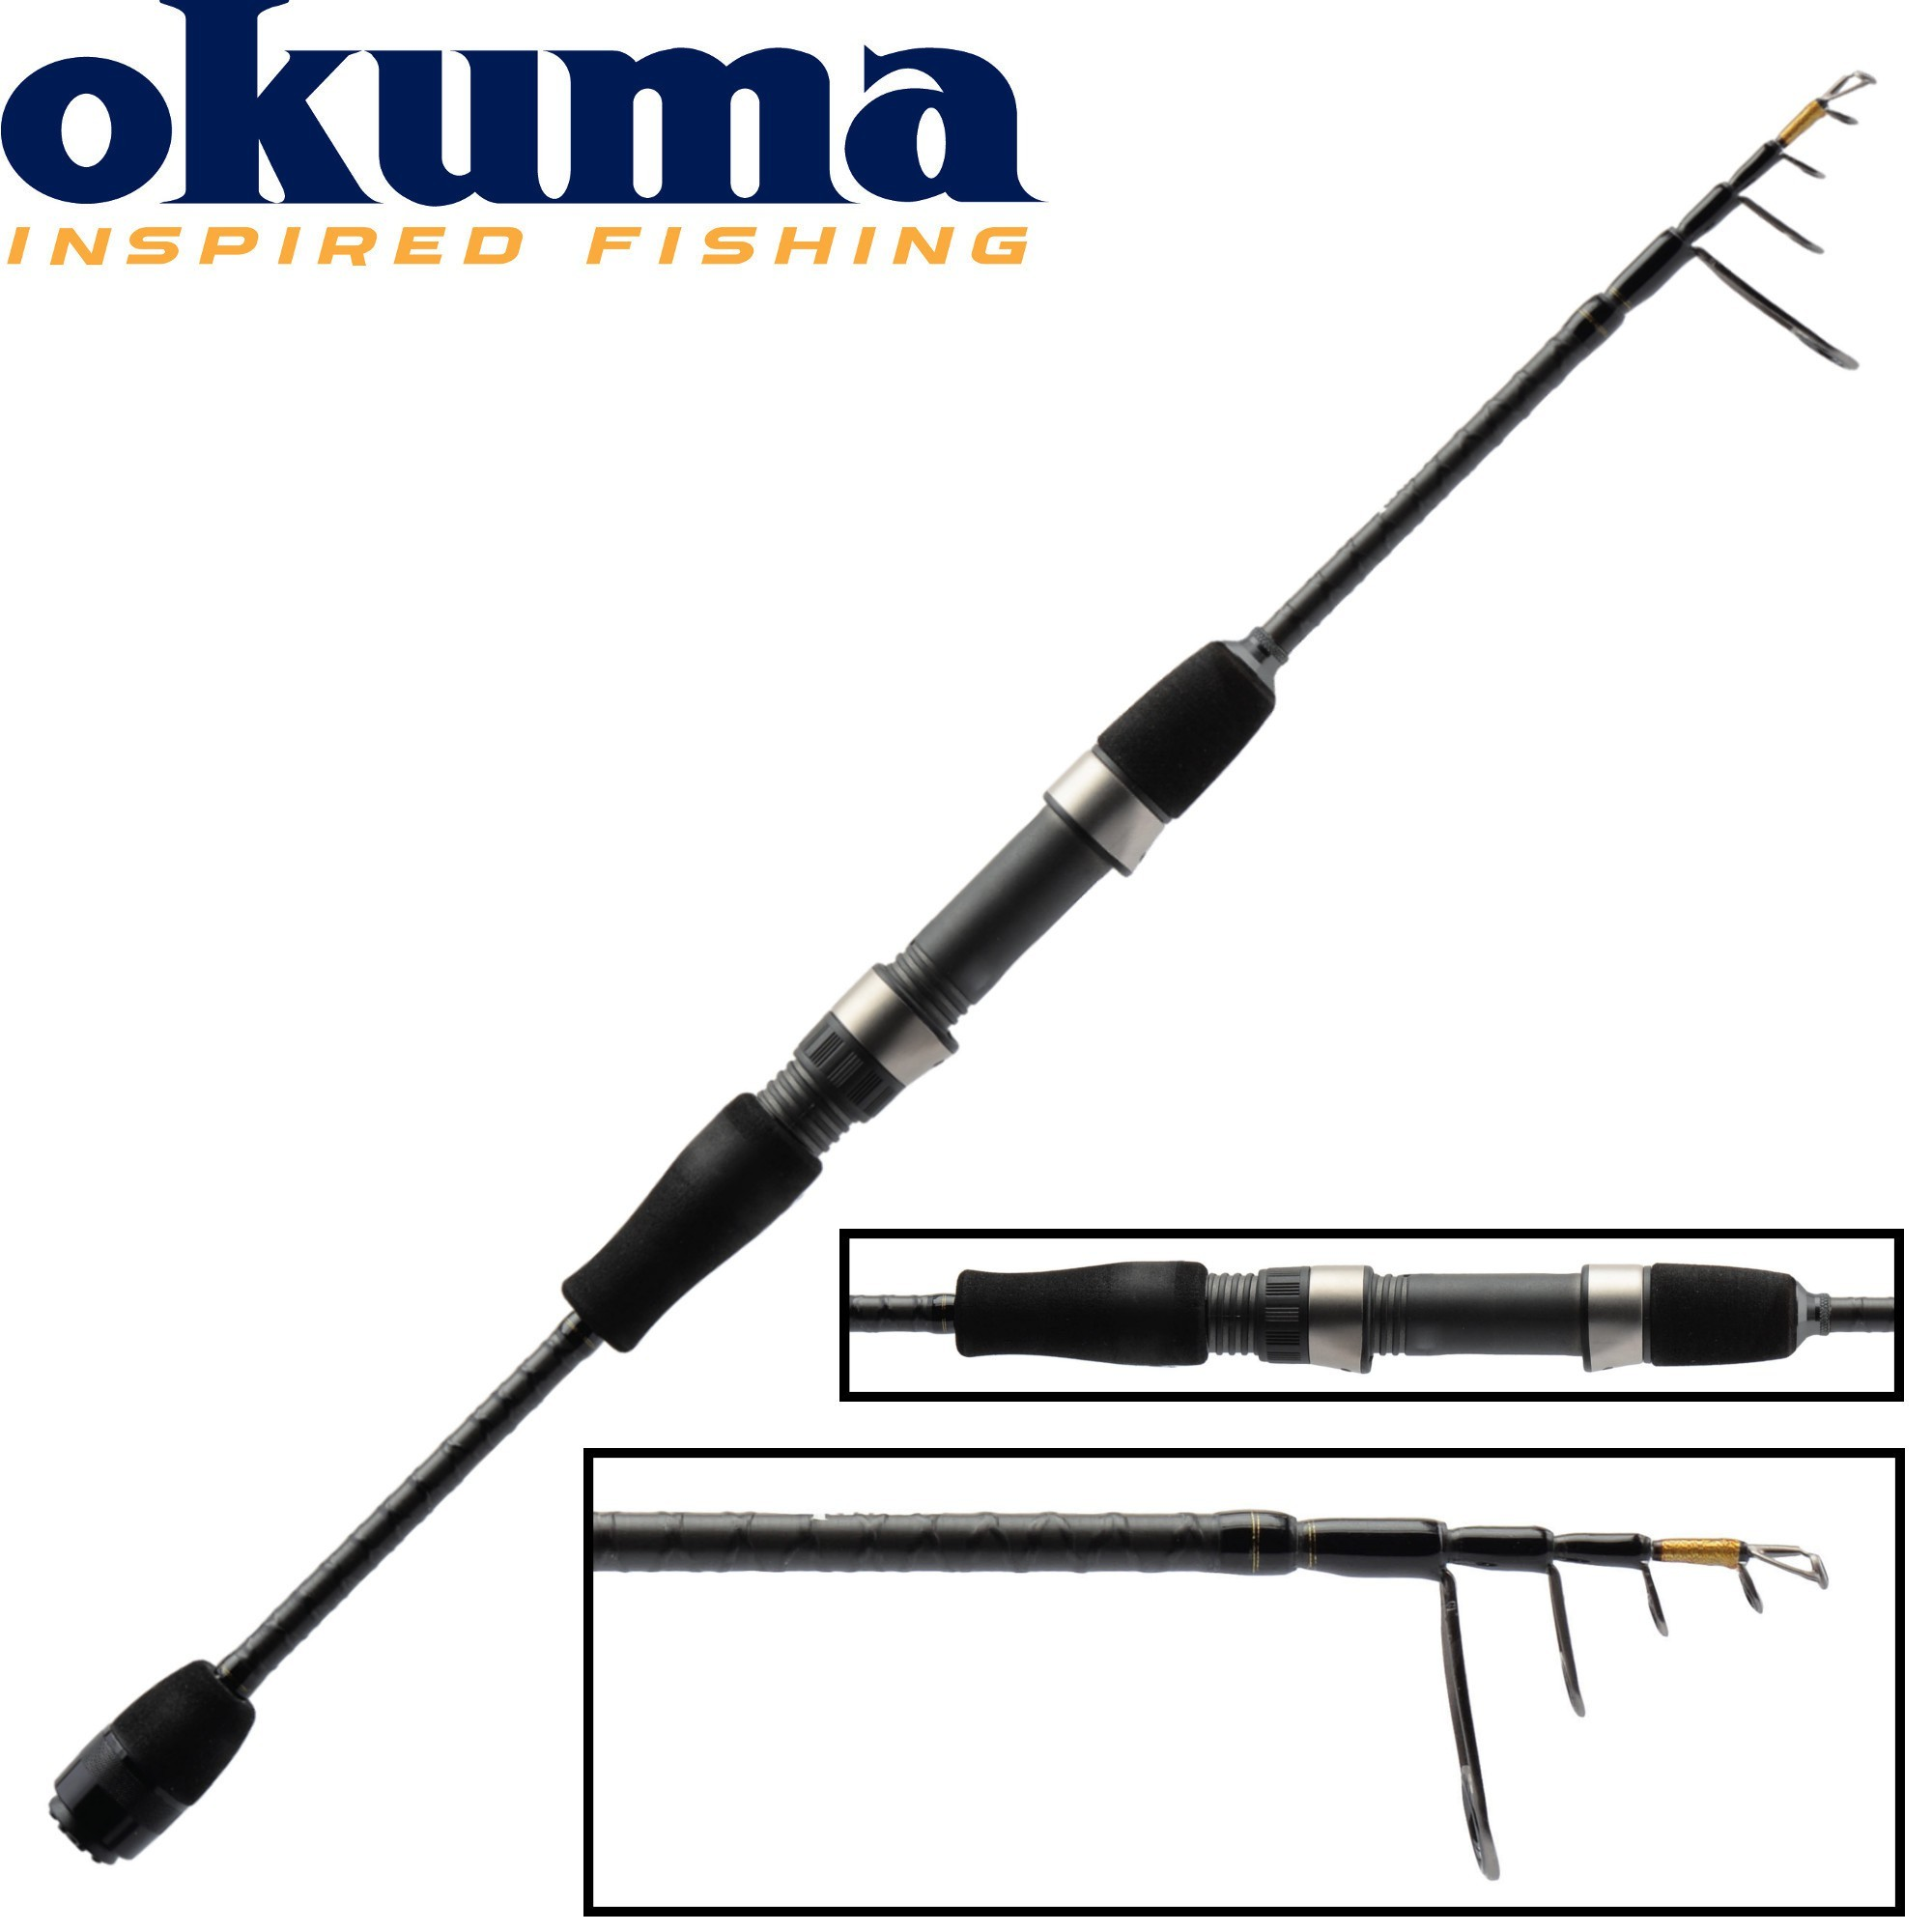 Palica Okuma Light Range Fishing 2,25m 8-22g